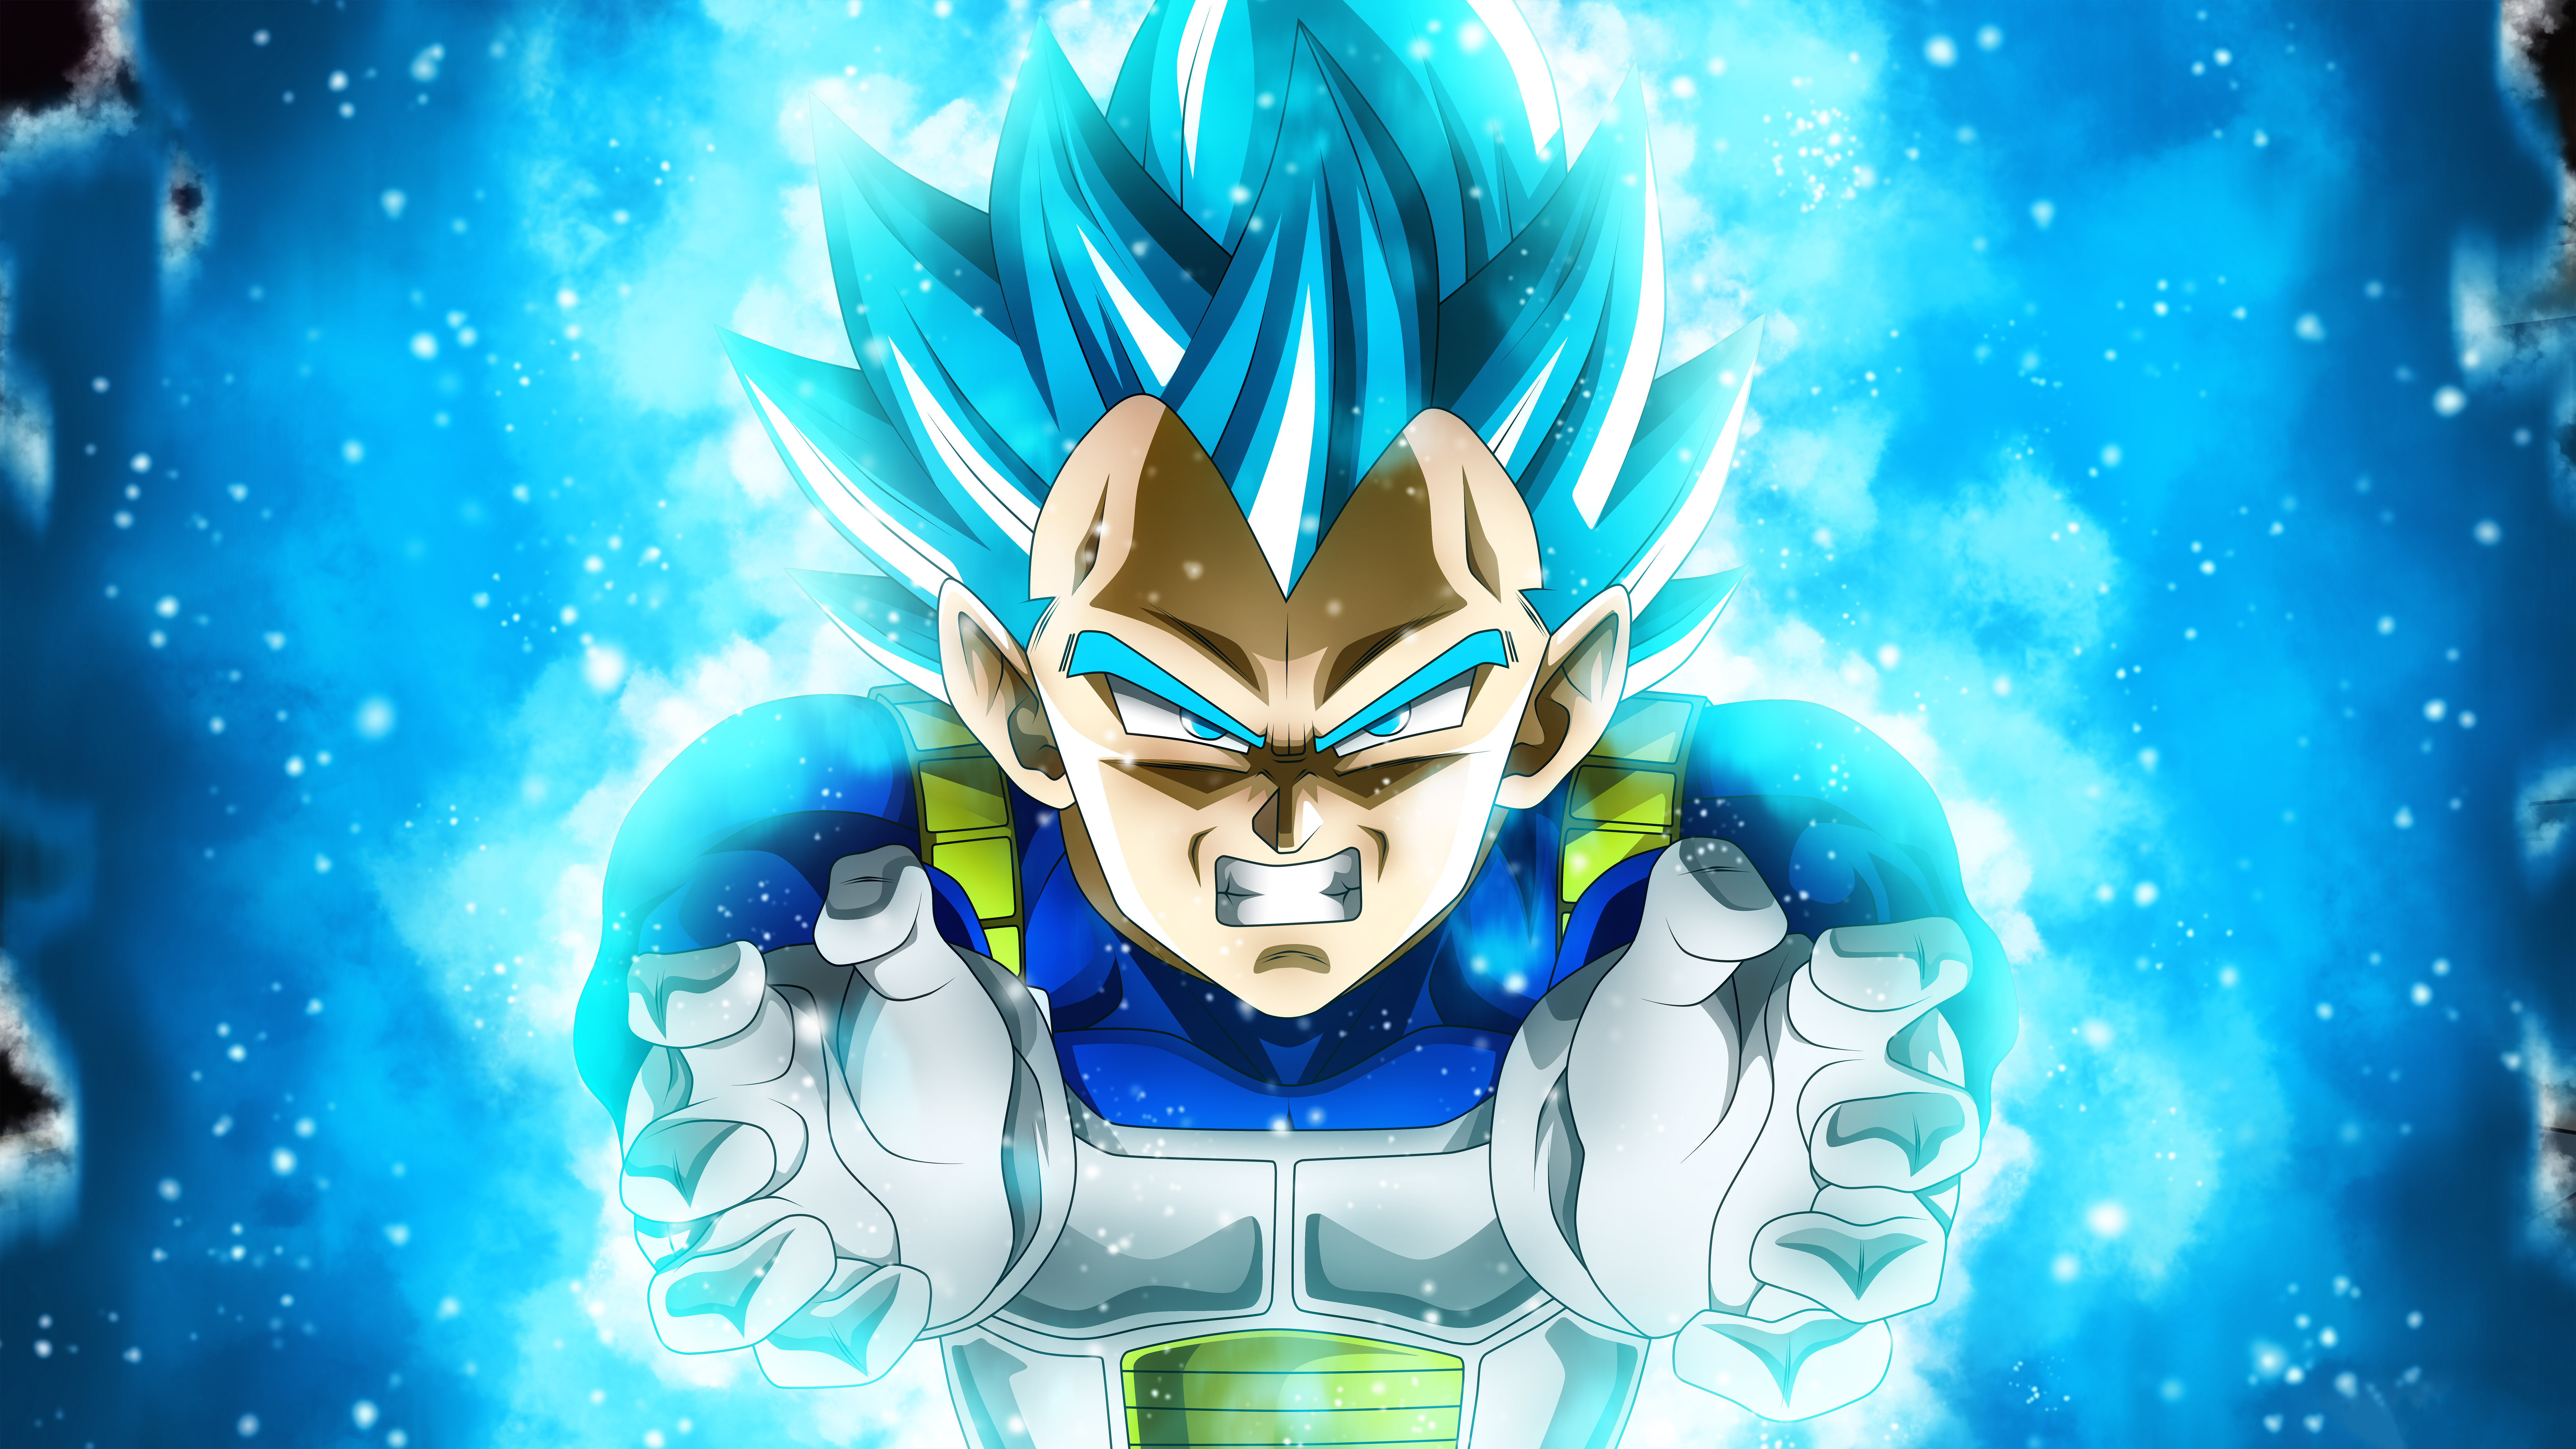 Dragon Ball Super 8k, HD Anime, 4k Wallpapers, Images, Backgrounds, Photos and Pictures